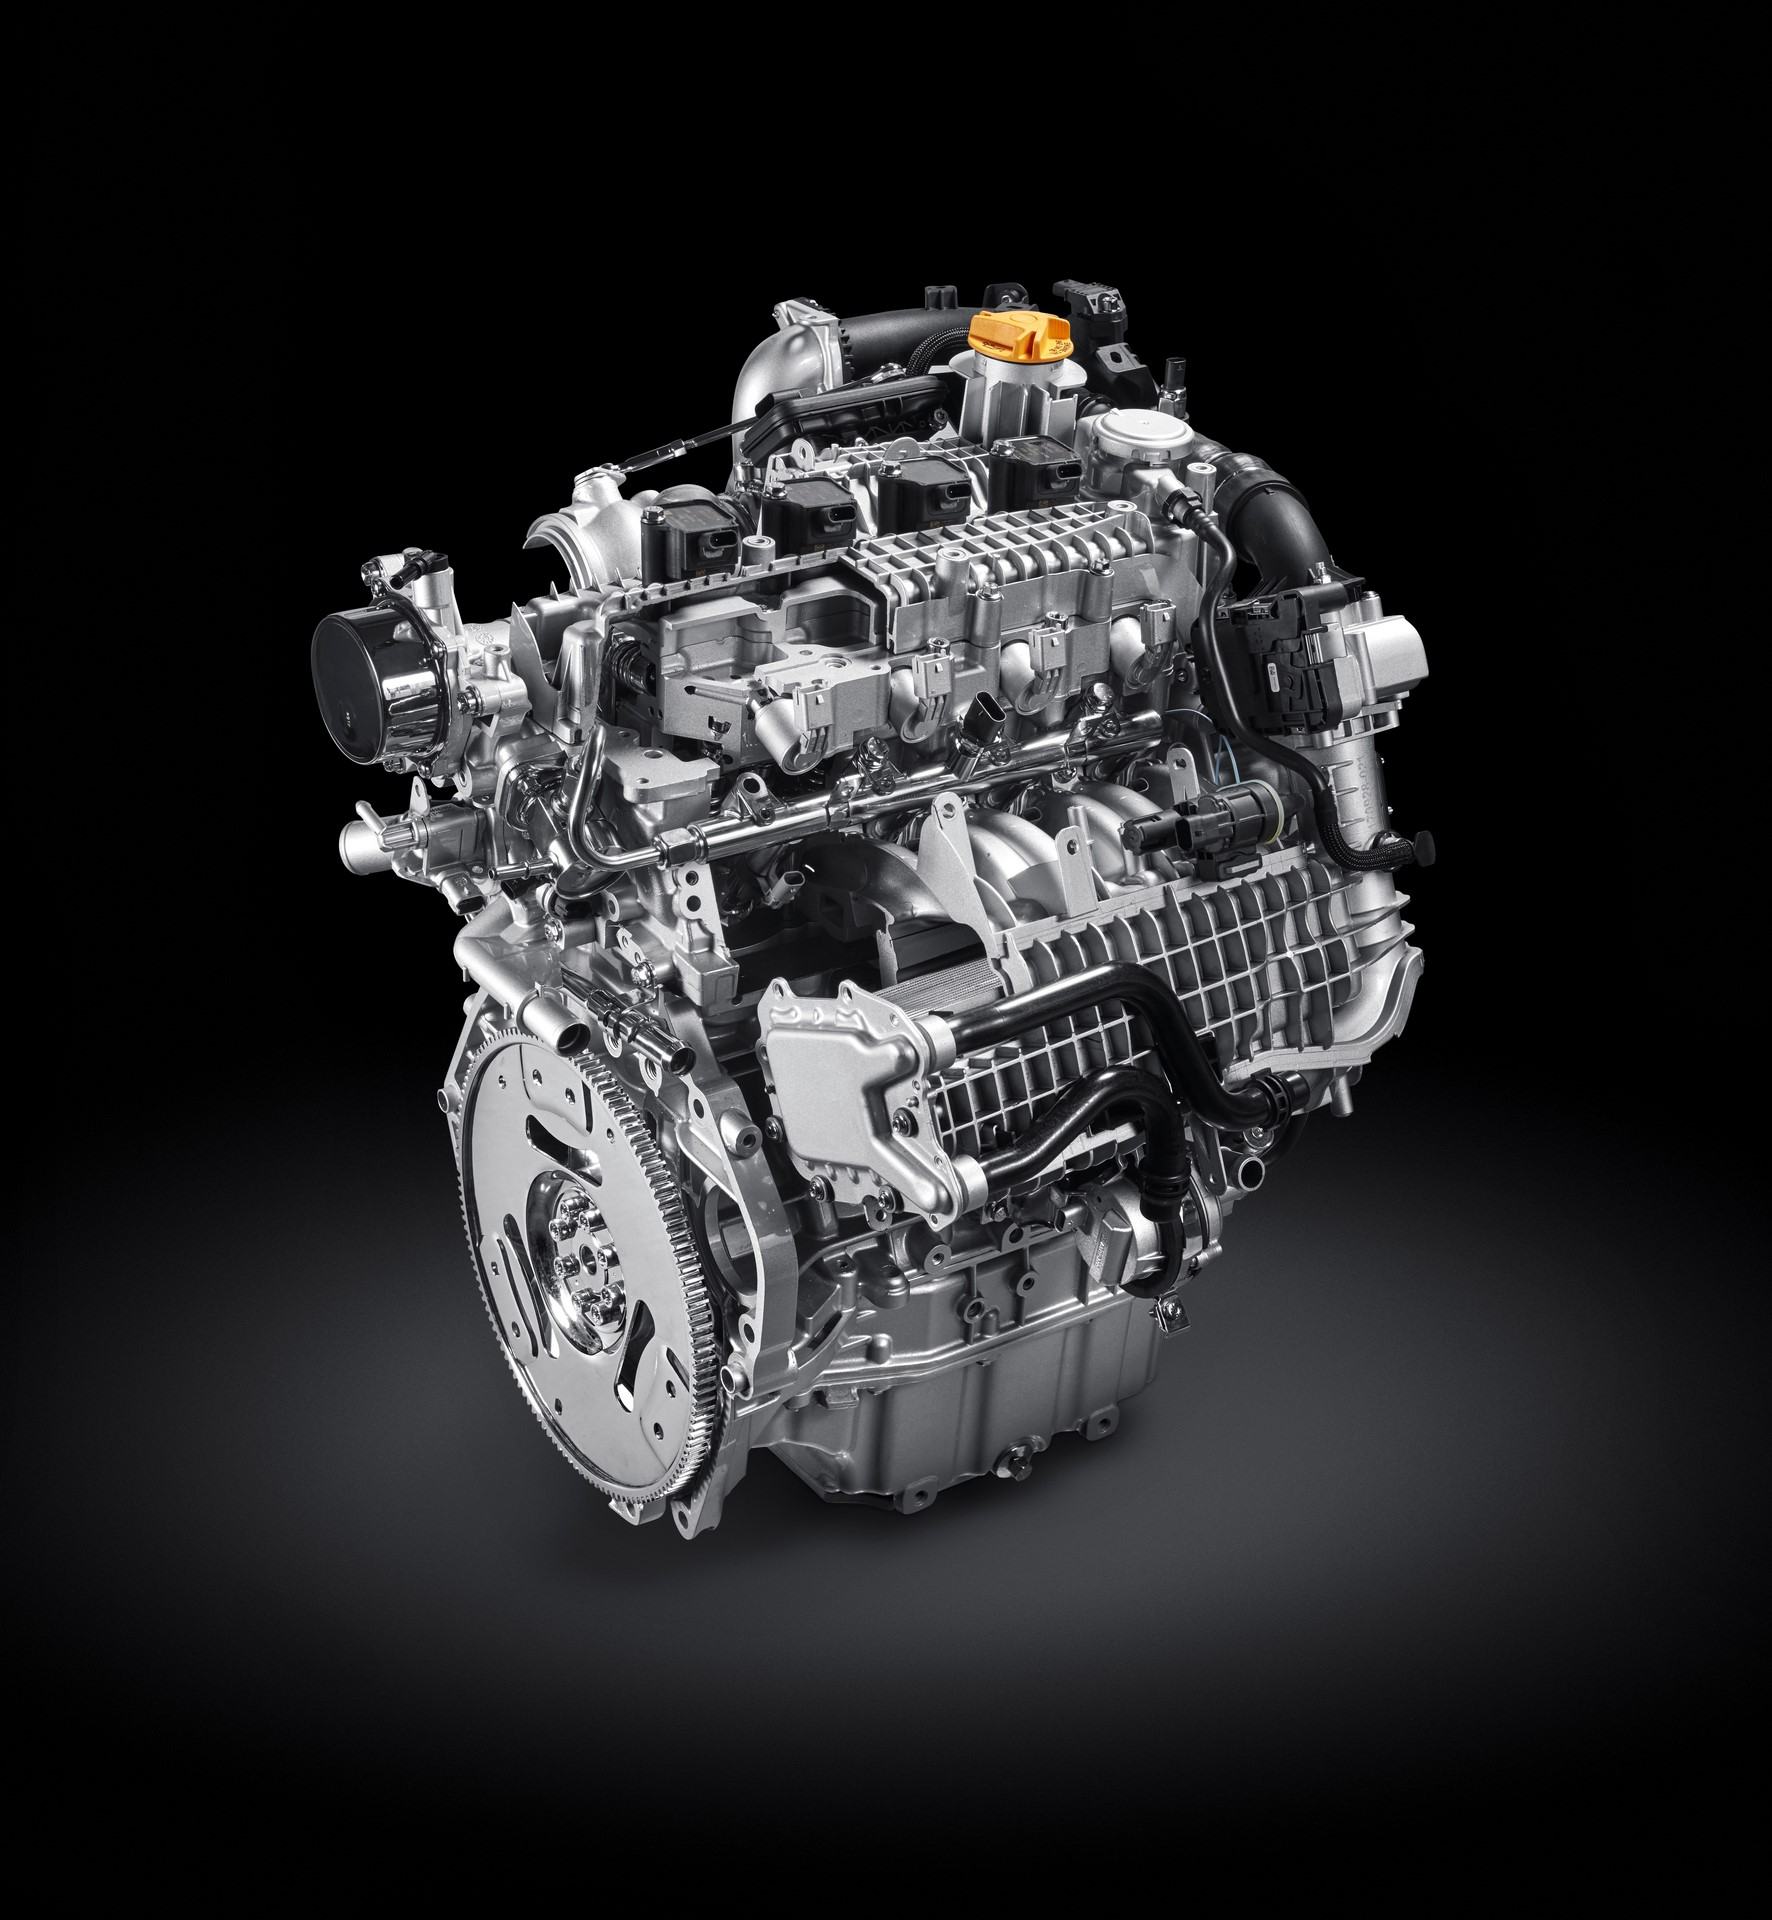 New-13L-Turbo-4-cylinder-150HP_14